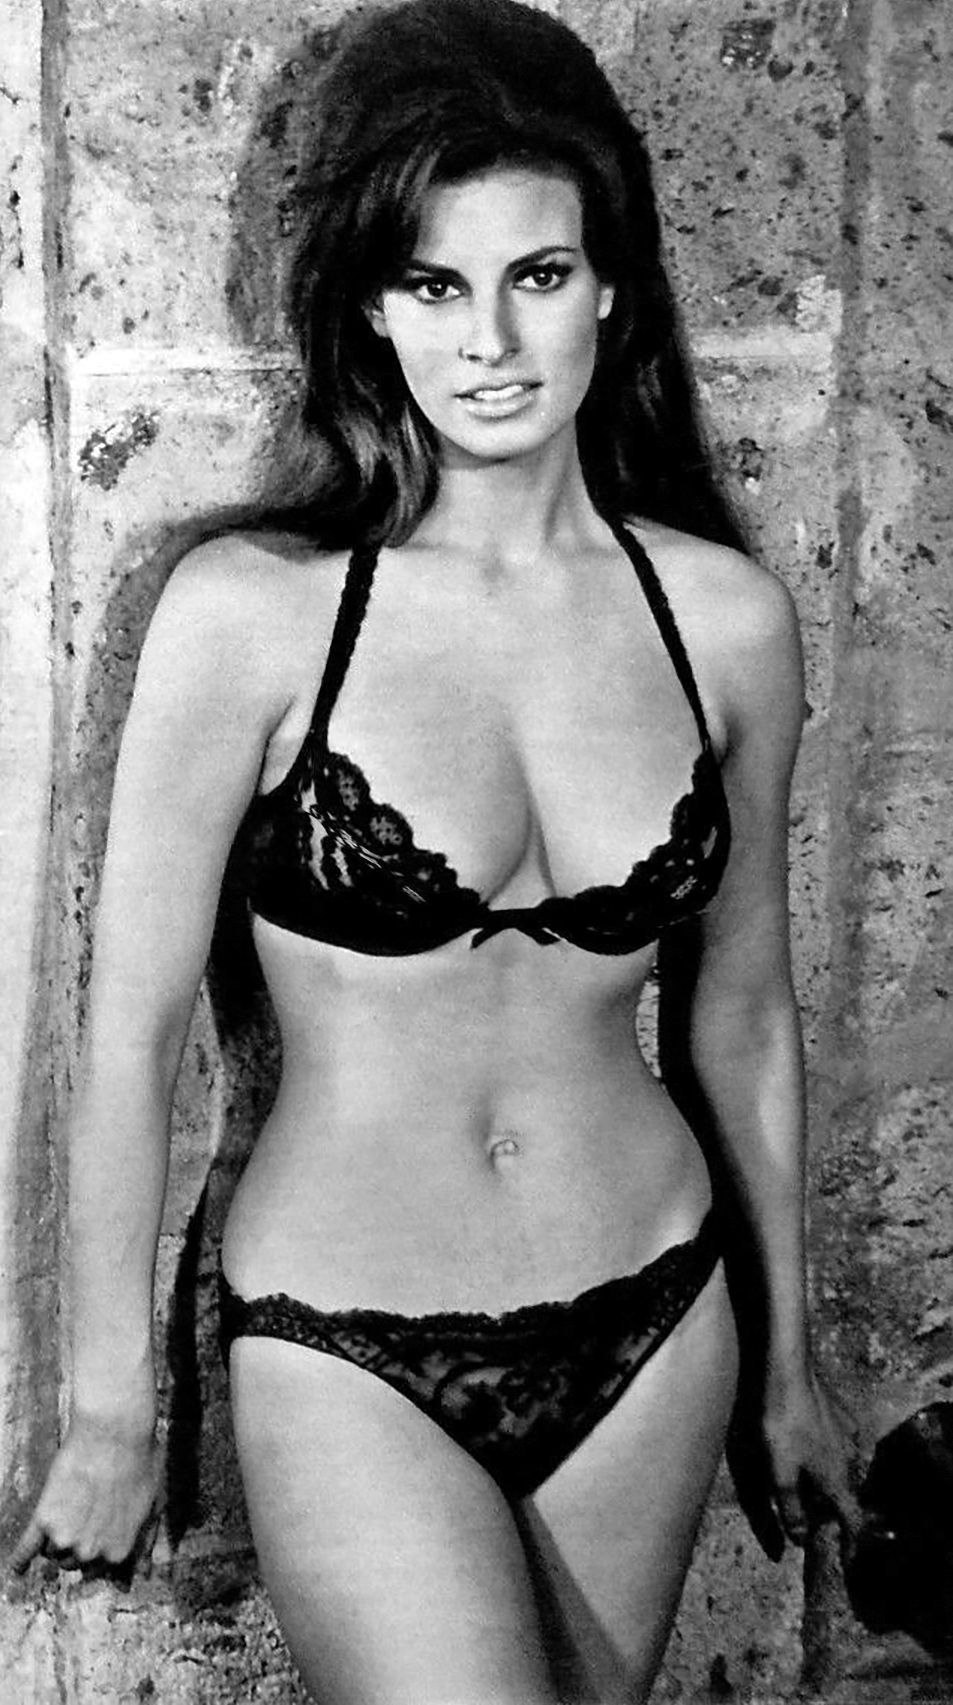 Ass Raquel Welch naked (89 photo), Pussy, Sideboobs, Instagram, panties 2020